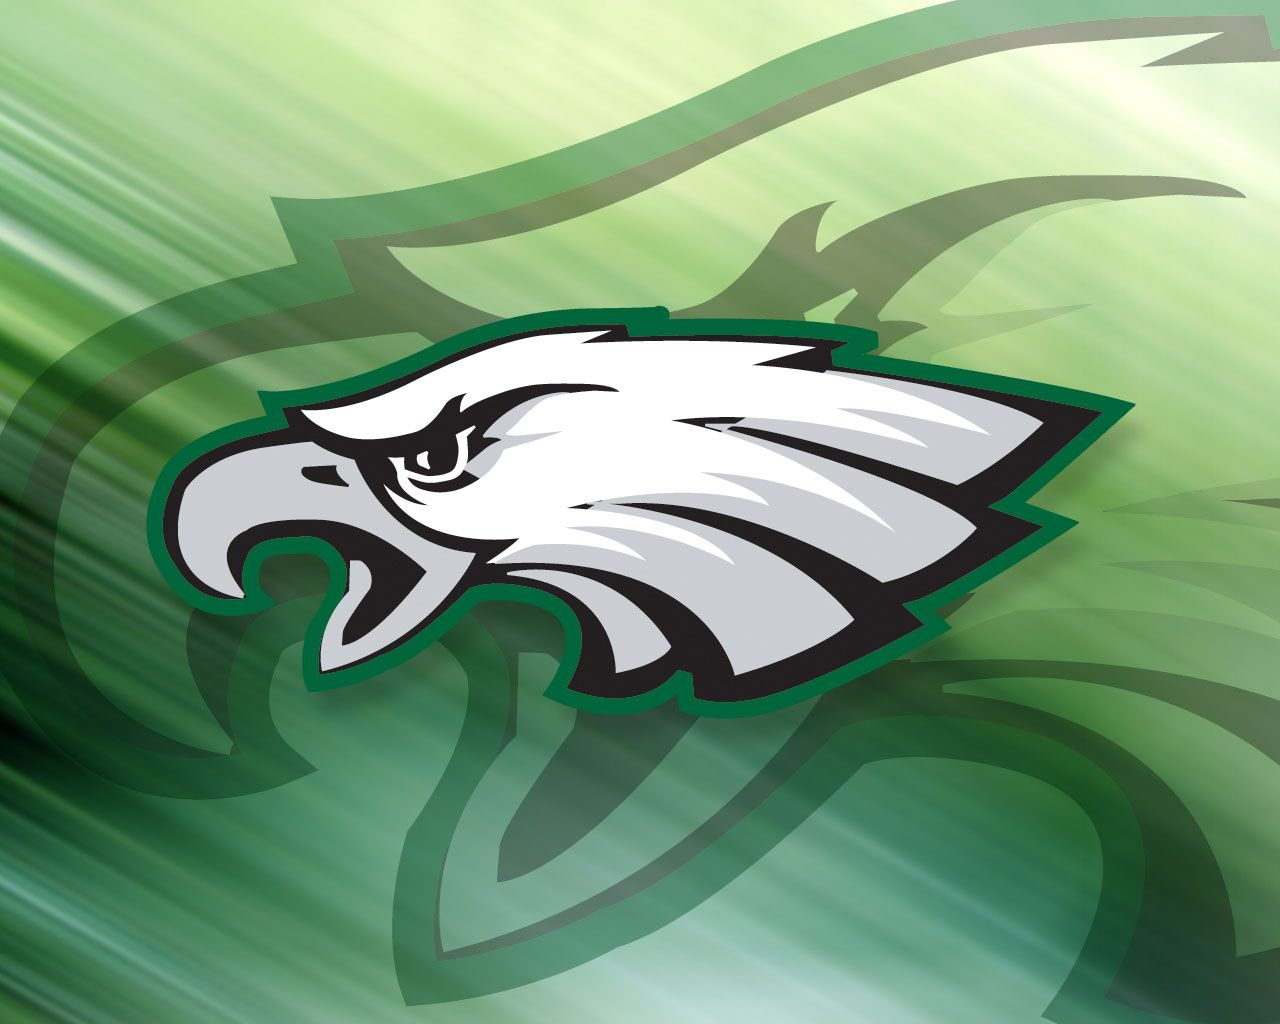 philadelphia eagles team logo wallpaper 1280x1024 photo 1280x1024